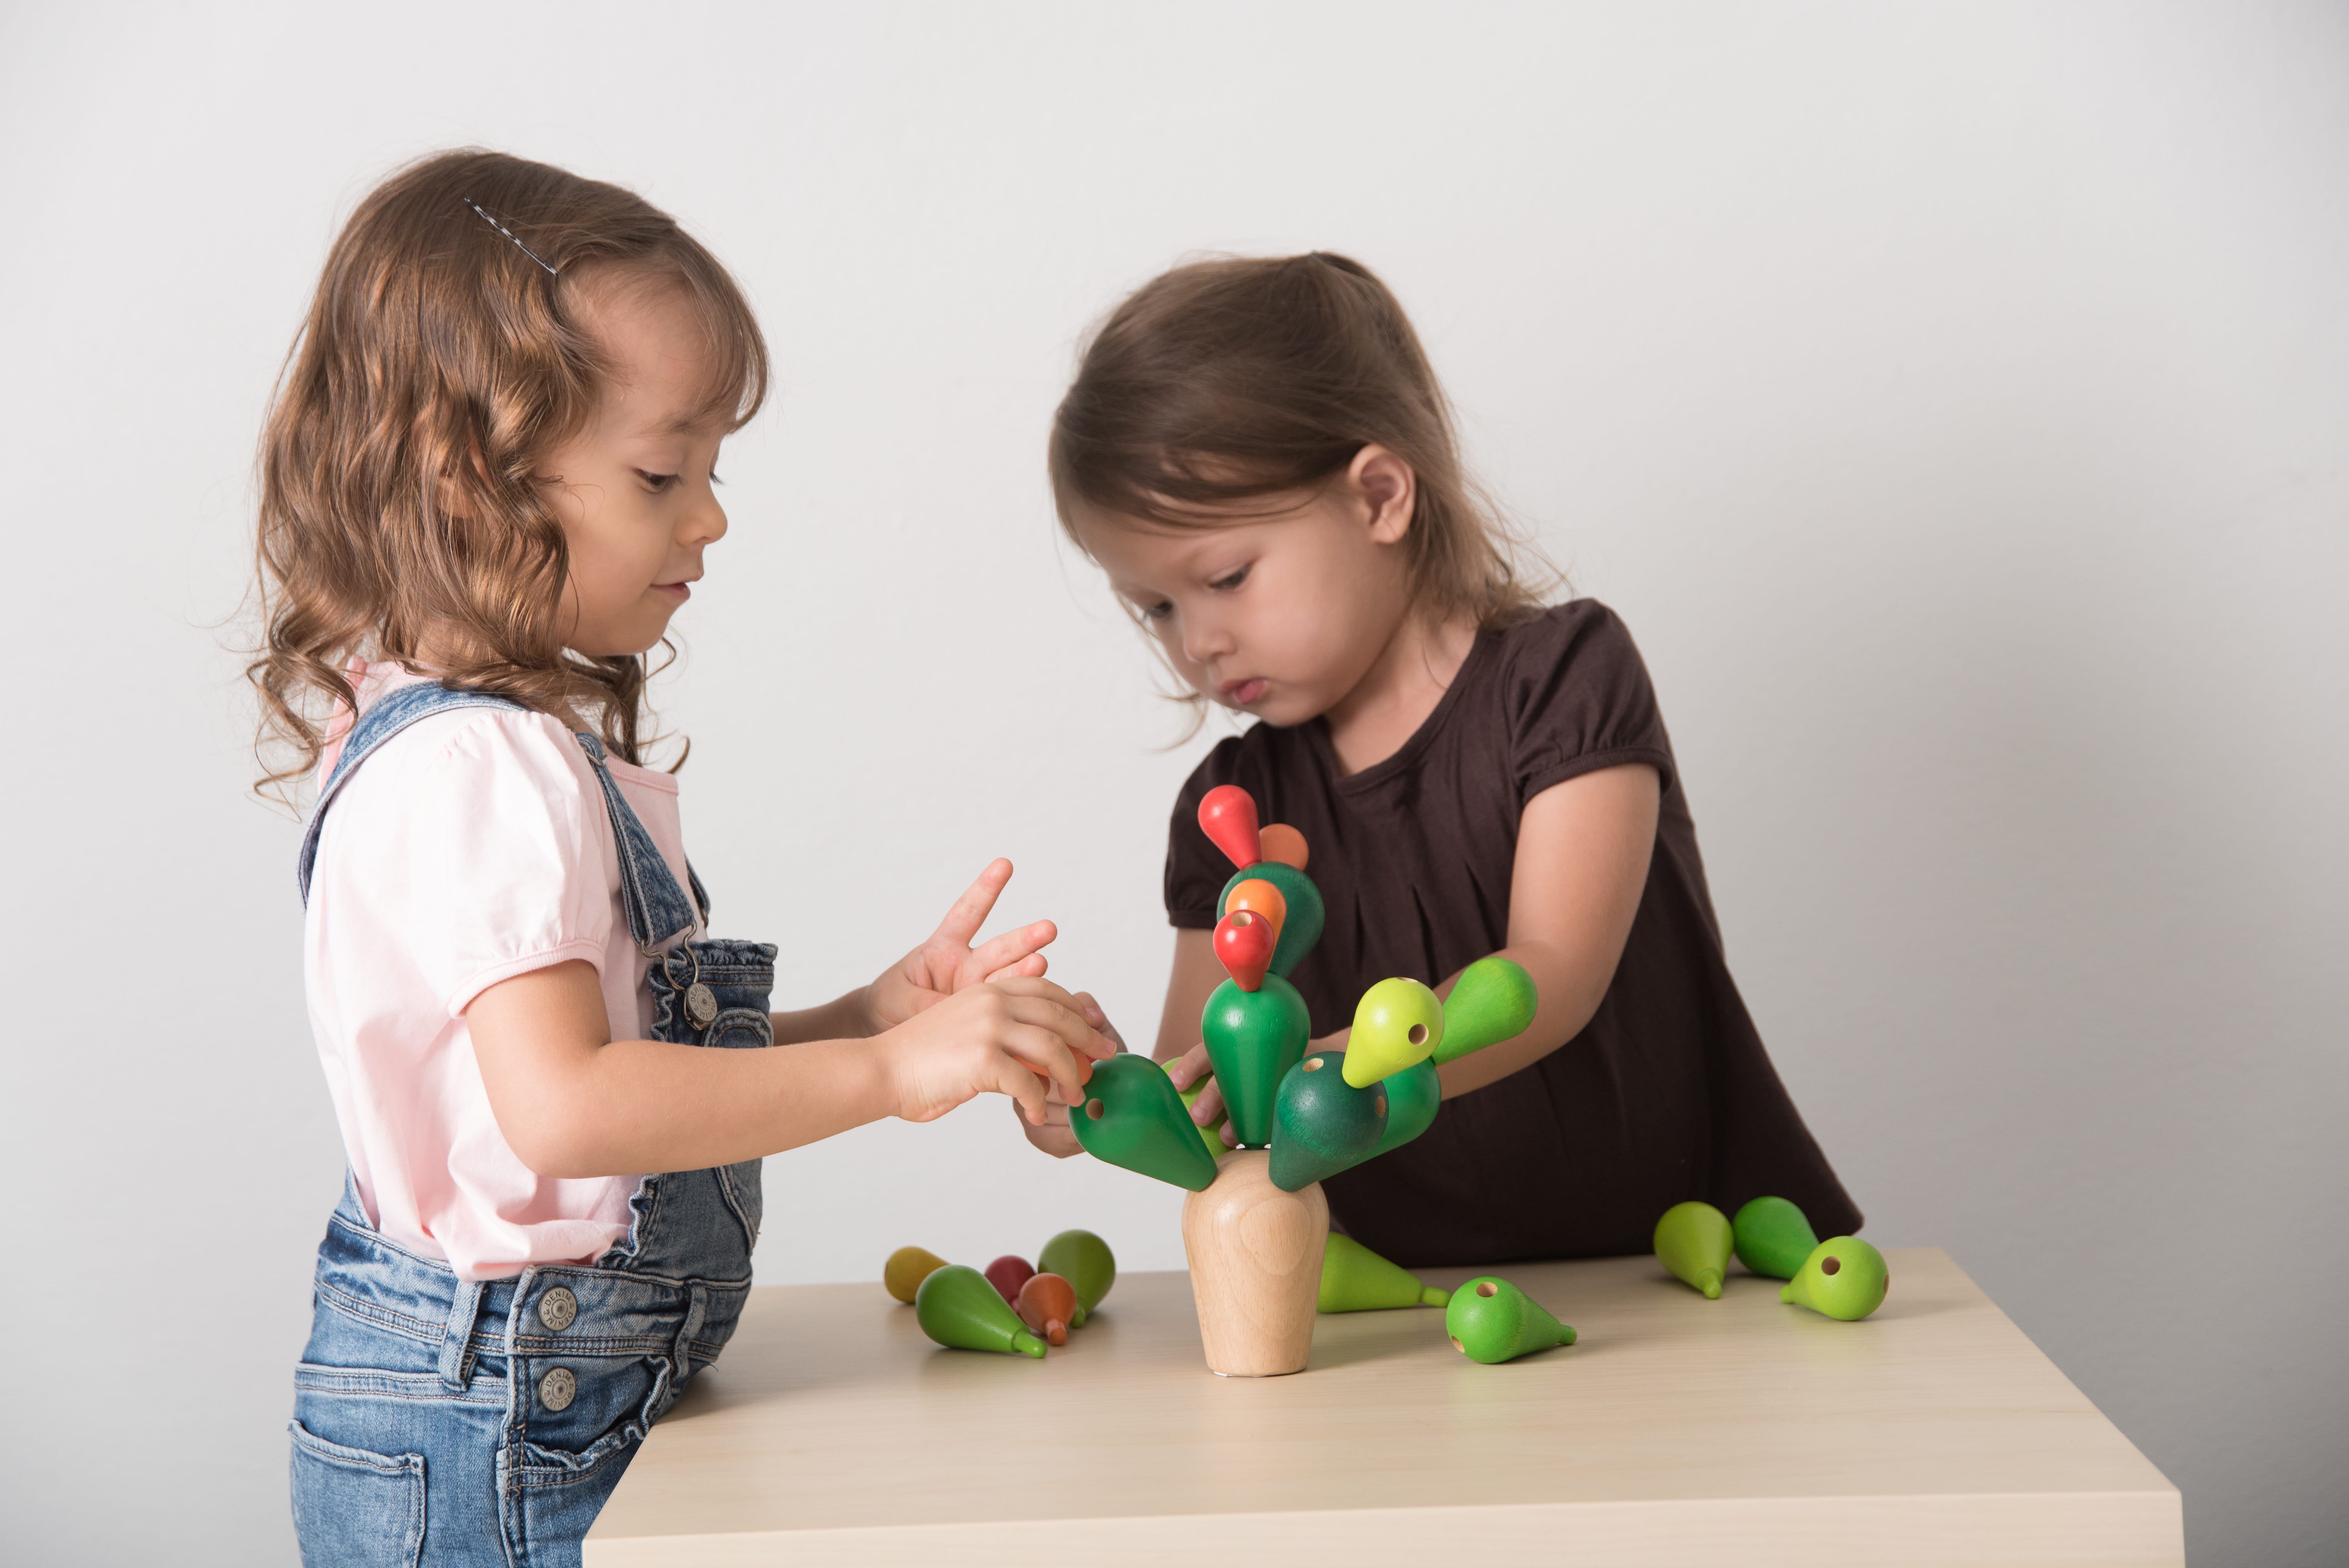 4101_PlanToys_BALANCING_CACTUS_Game_and_Puzzles_Concentration_Logical_Coordination_Problem_Solving_Language_and_Communications_Mathematical_3yrs_Wooden_toys_Education_toys_Safety_Toys_Non-toxic_6.jpg